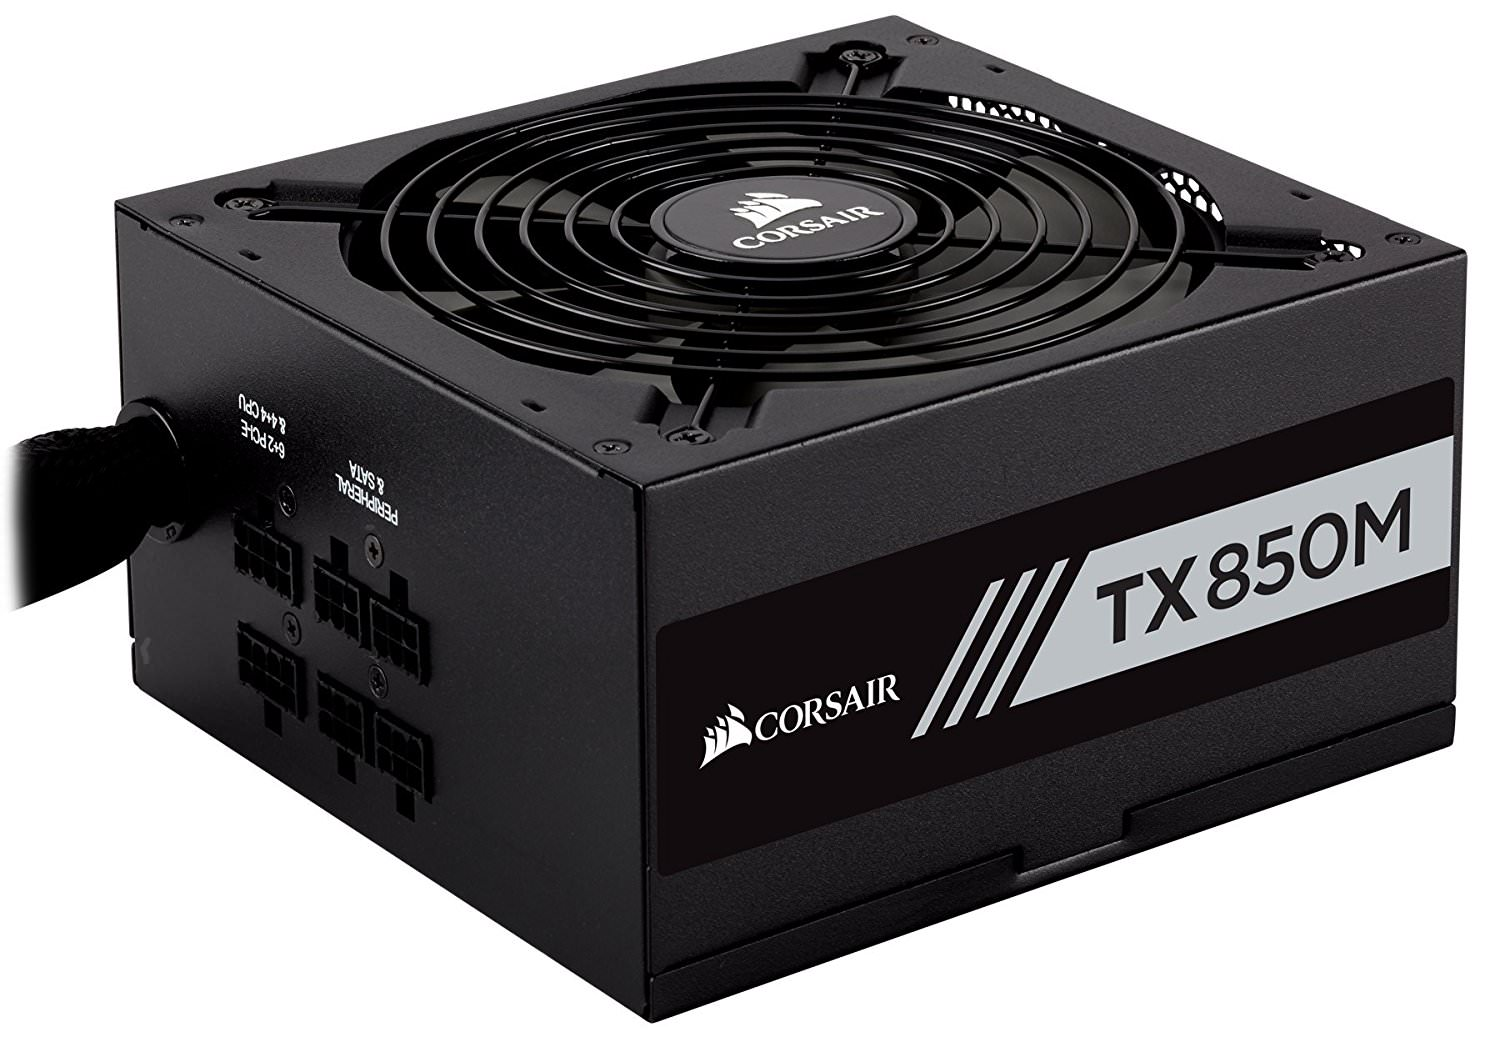 CORSAIR TX Series TX850M 850W 80+ Gold Modular Power Supply CP-9020130-NA by Corsair